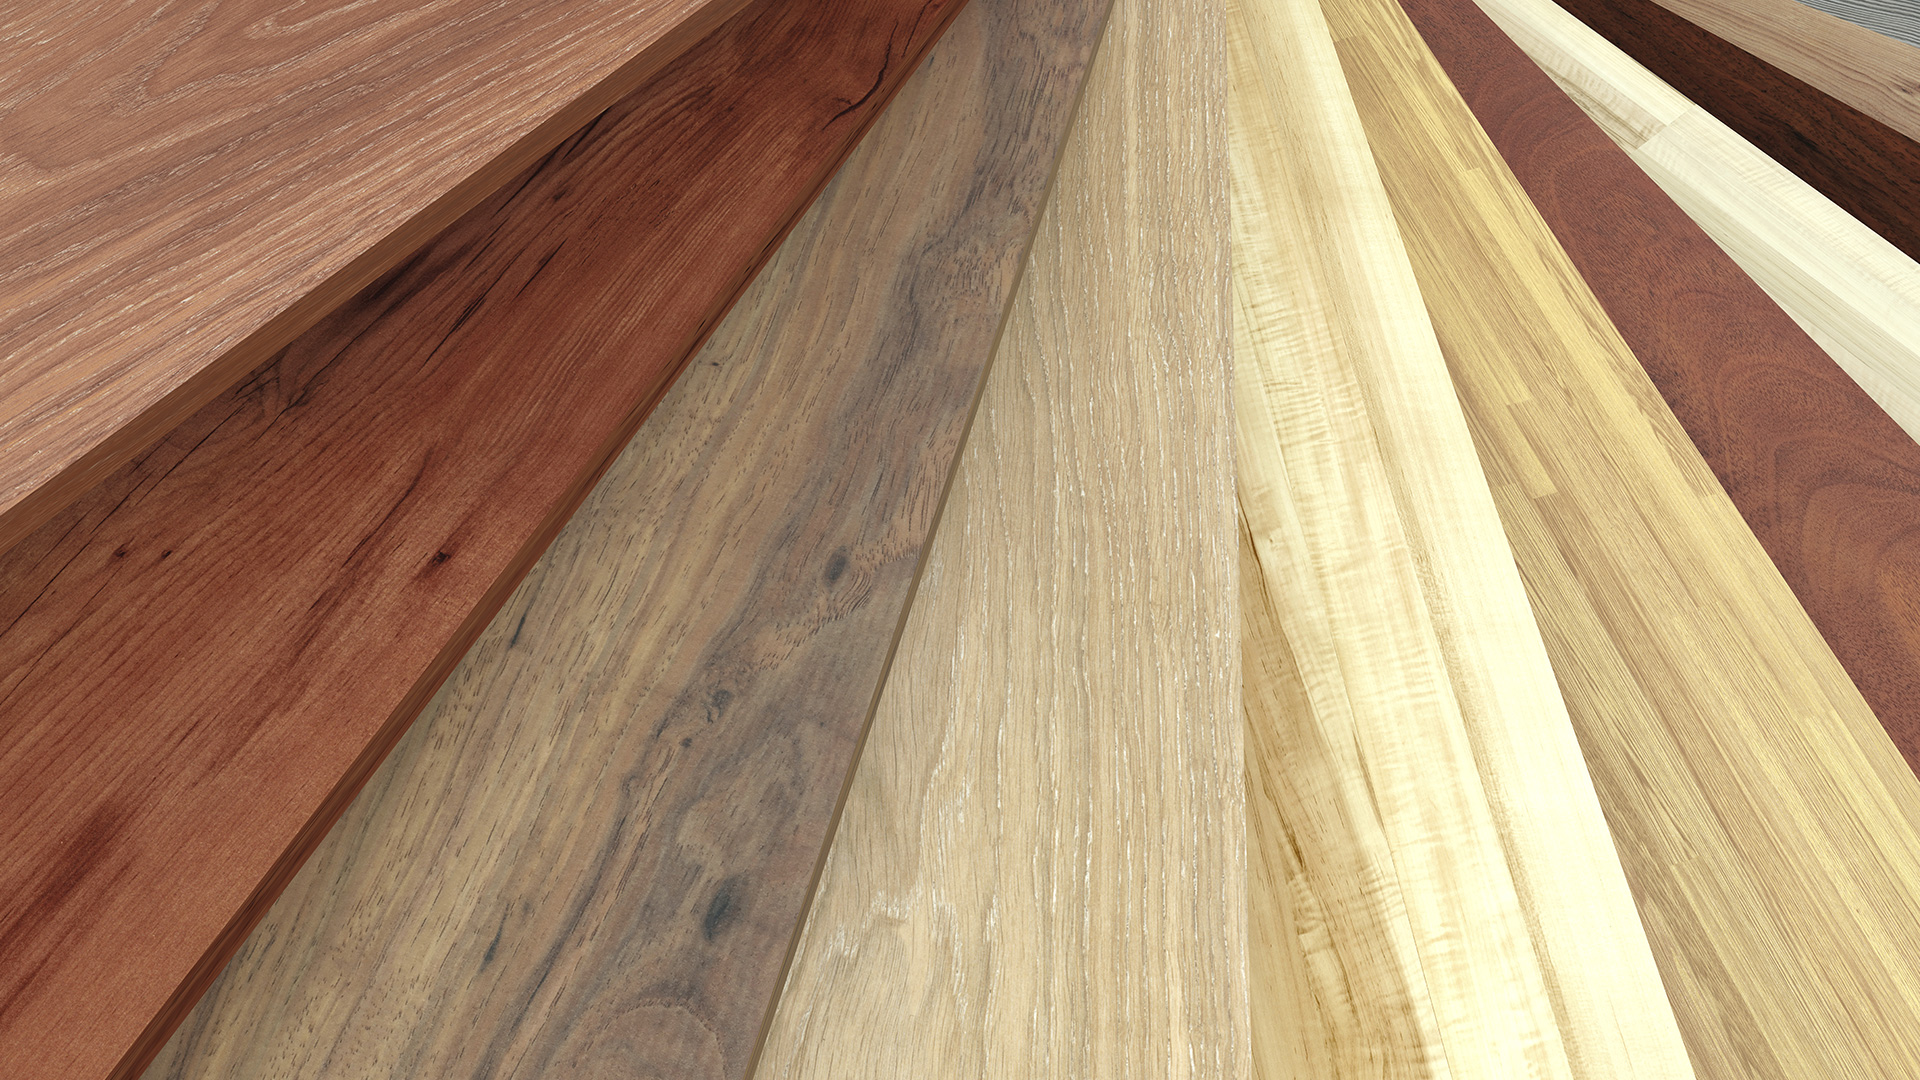 Flooring systems clarkston floor covering for Floor covering